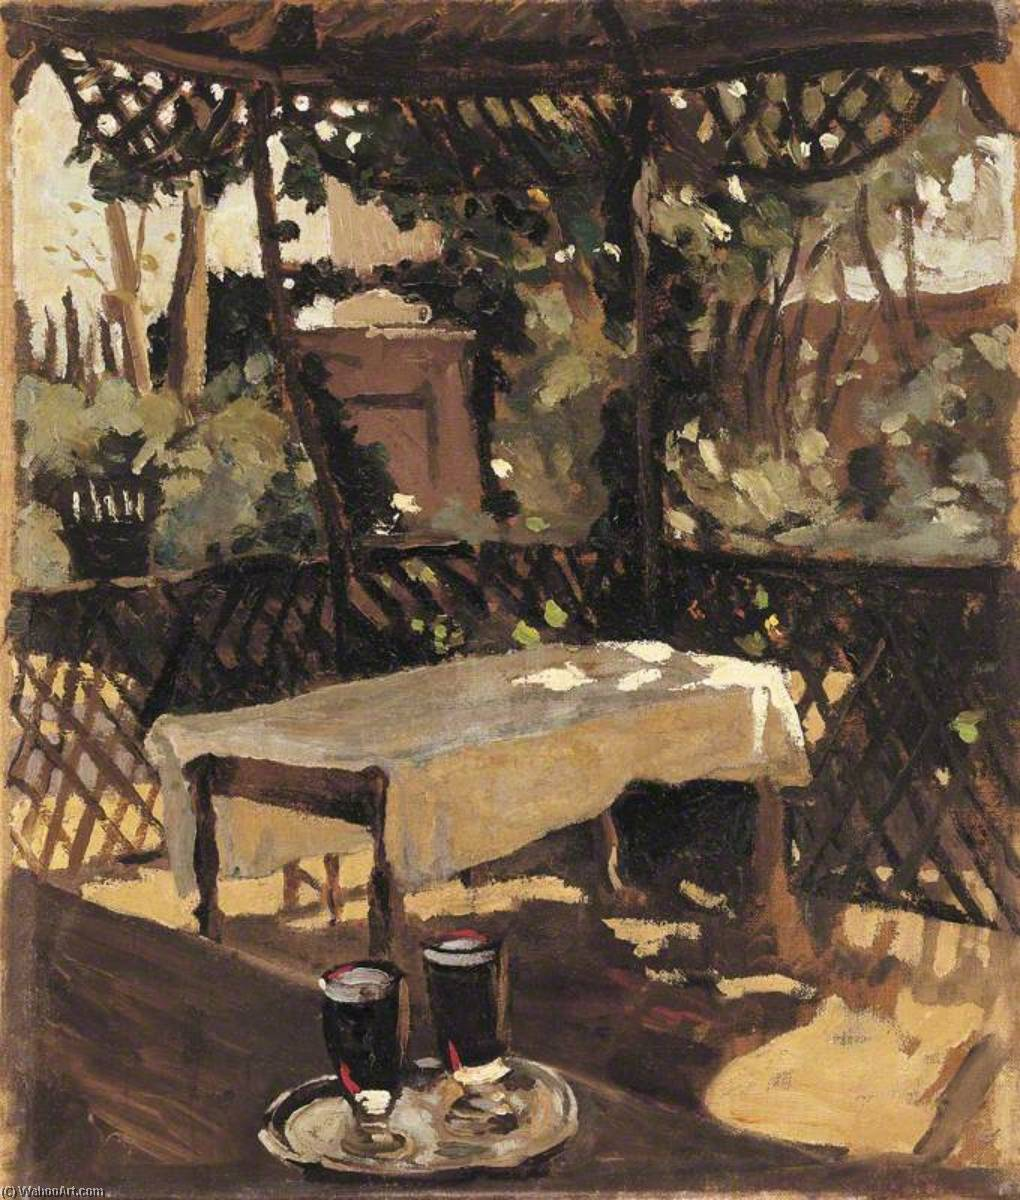 famous painting Two Glasses on a Tray on a Verandah (after John Singer Sargent) of Winston Spencer Churchill